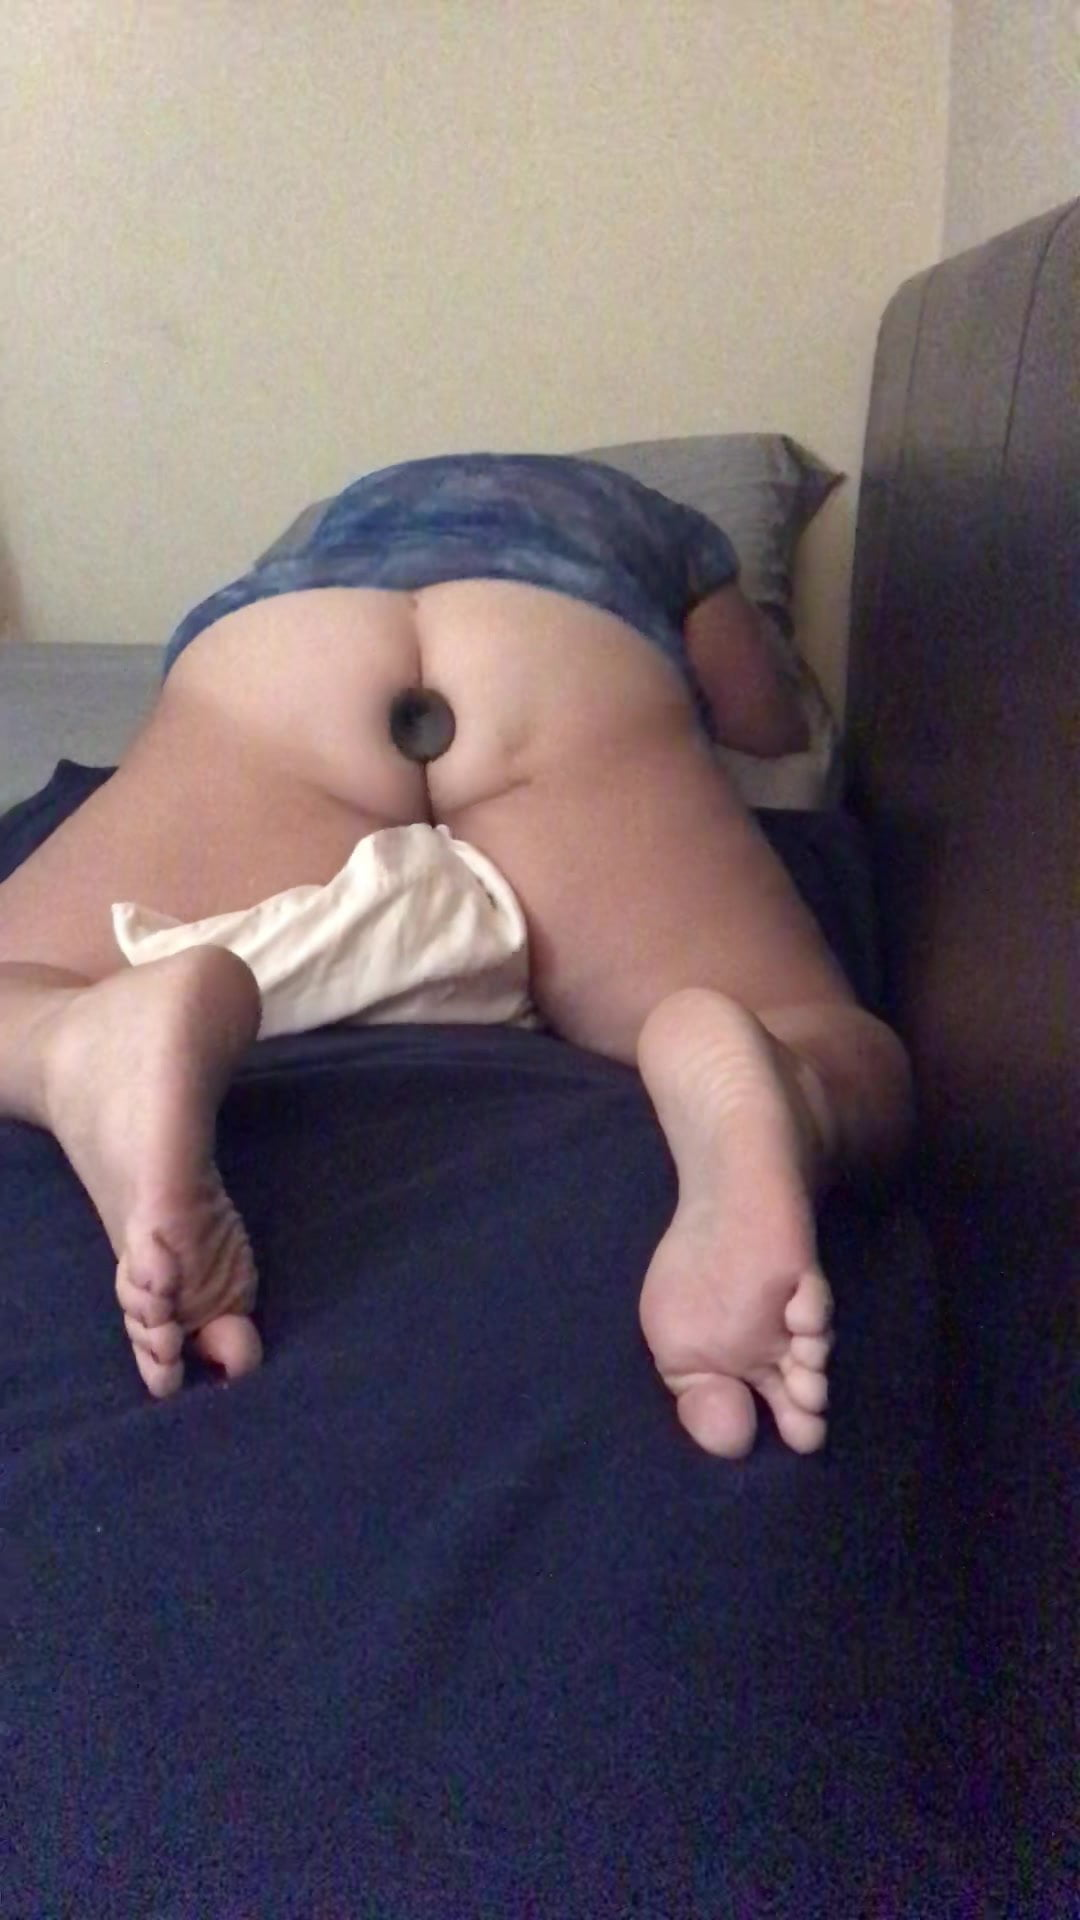 Chubby Teen Pillow Humping